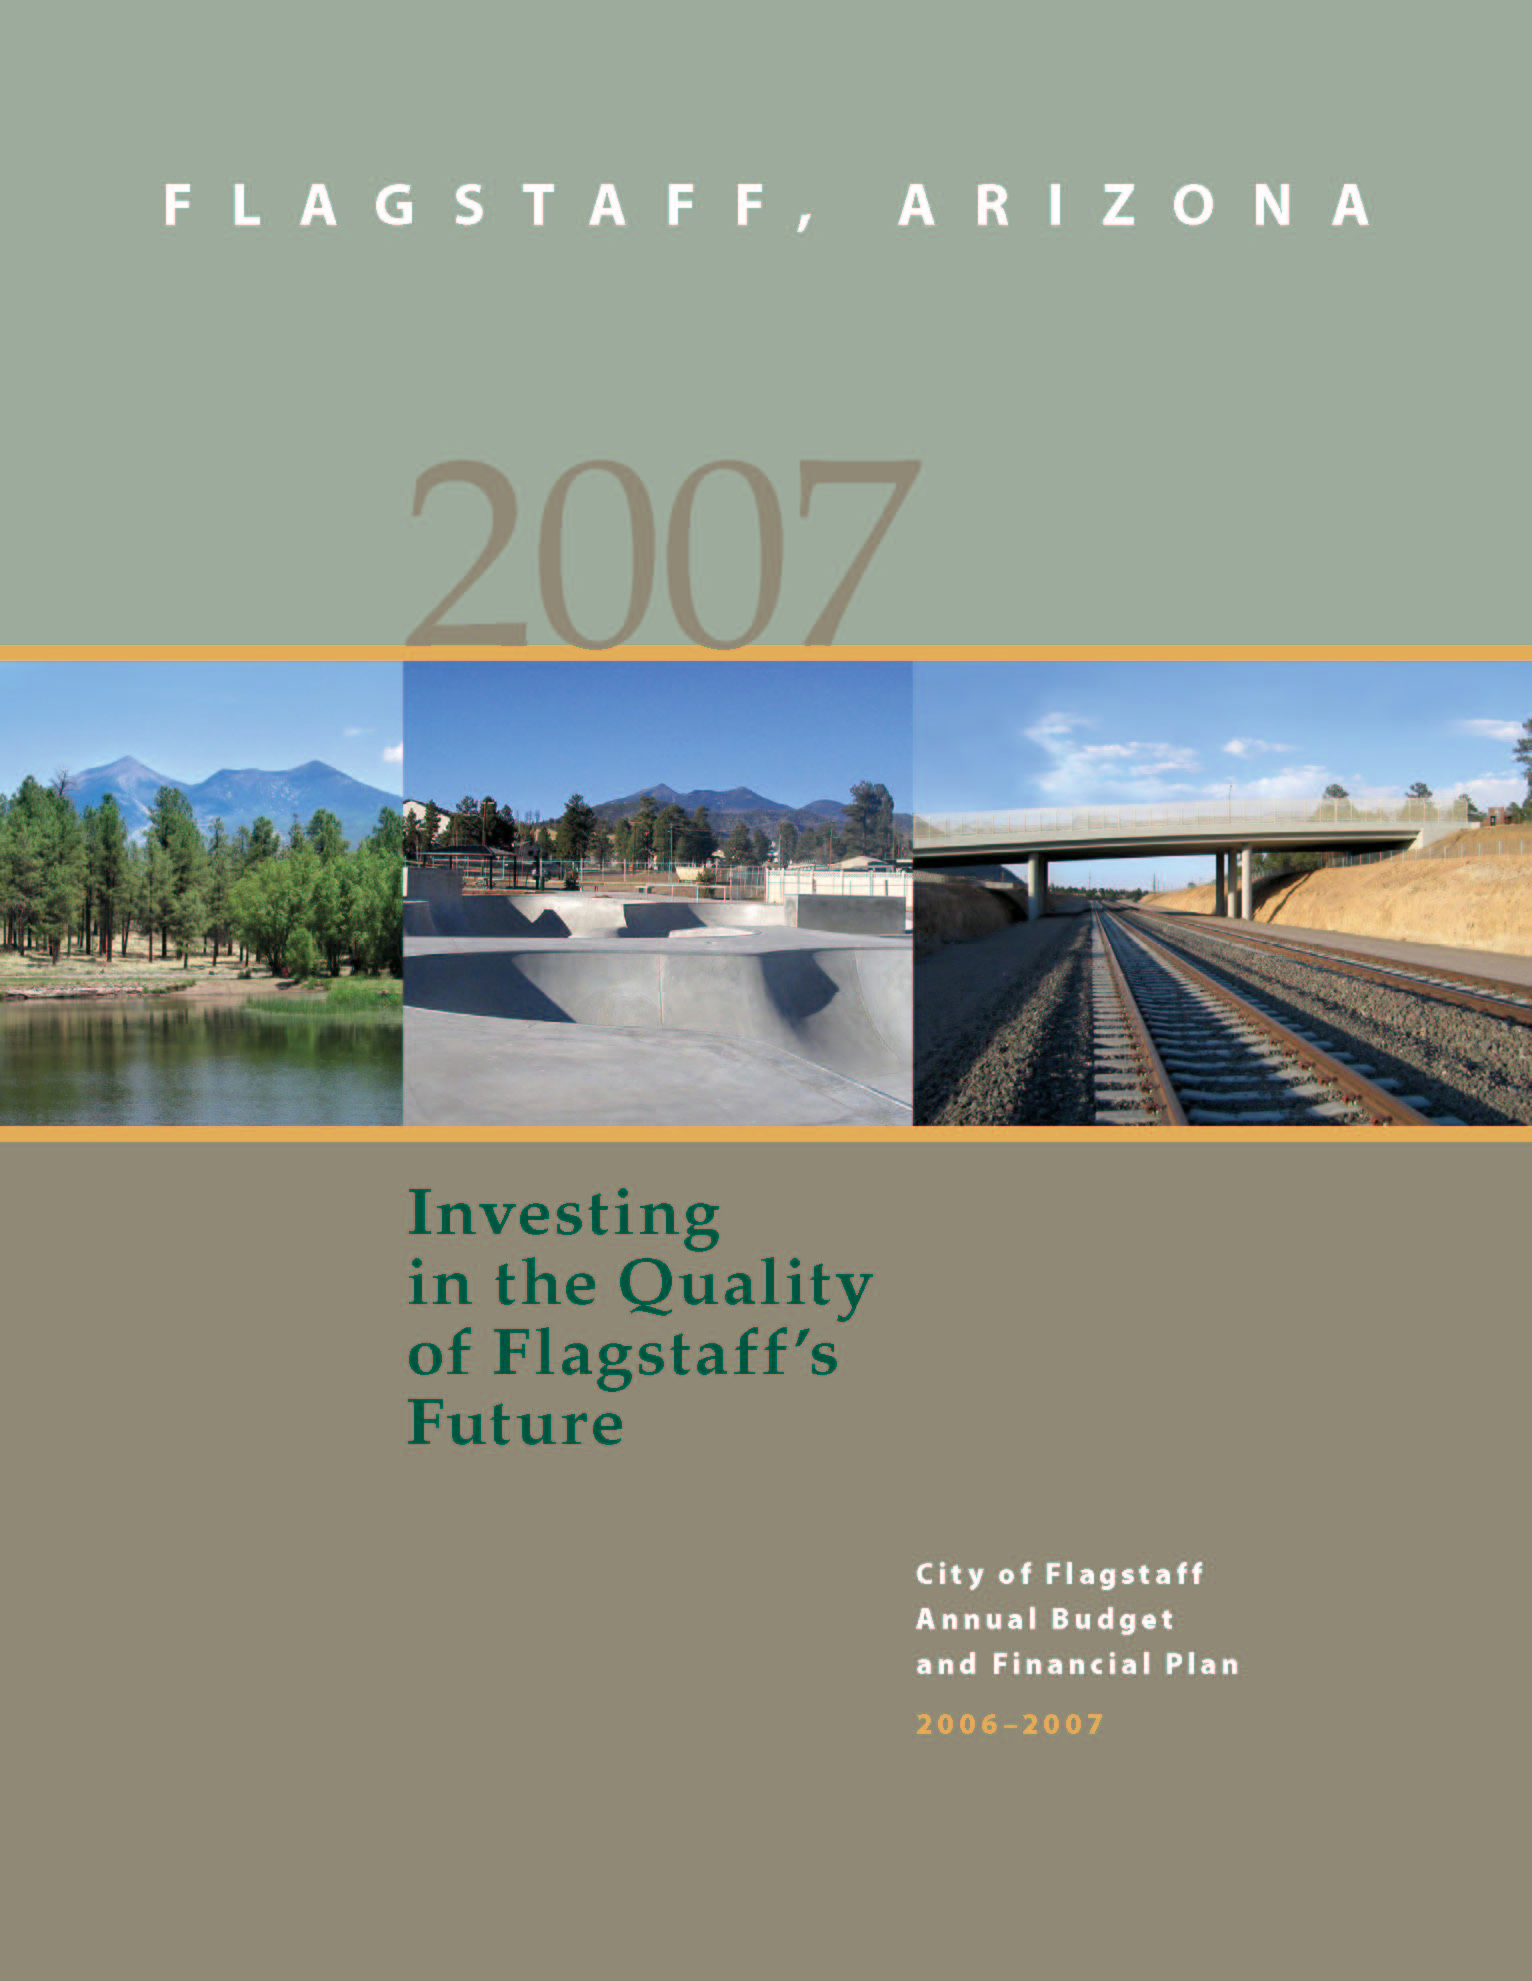 2007 City of Flagstaff Annual Budget and Financial Plan (PDF)